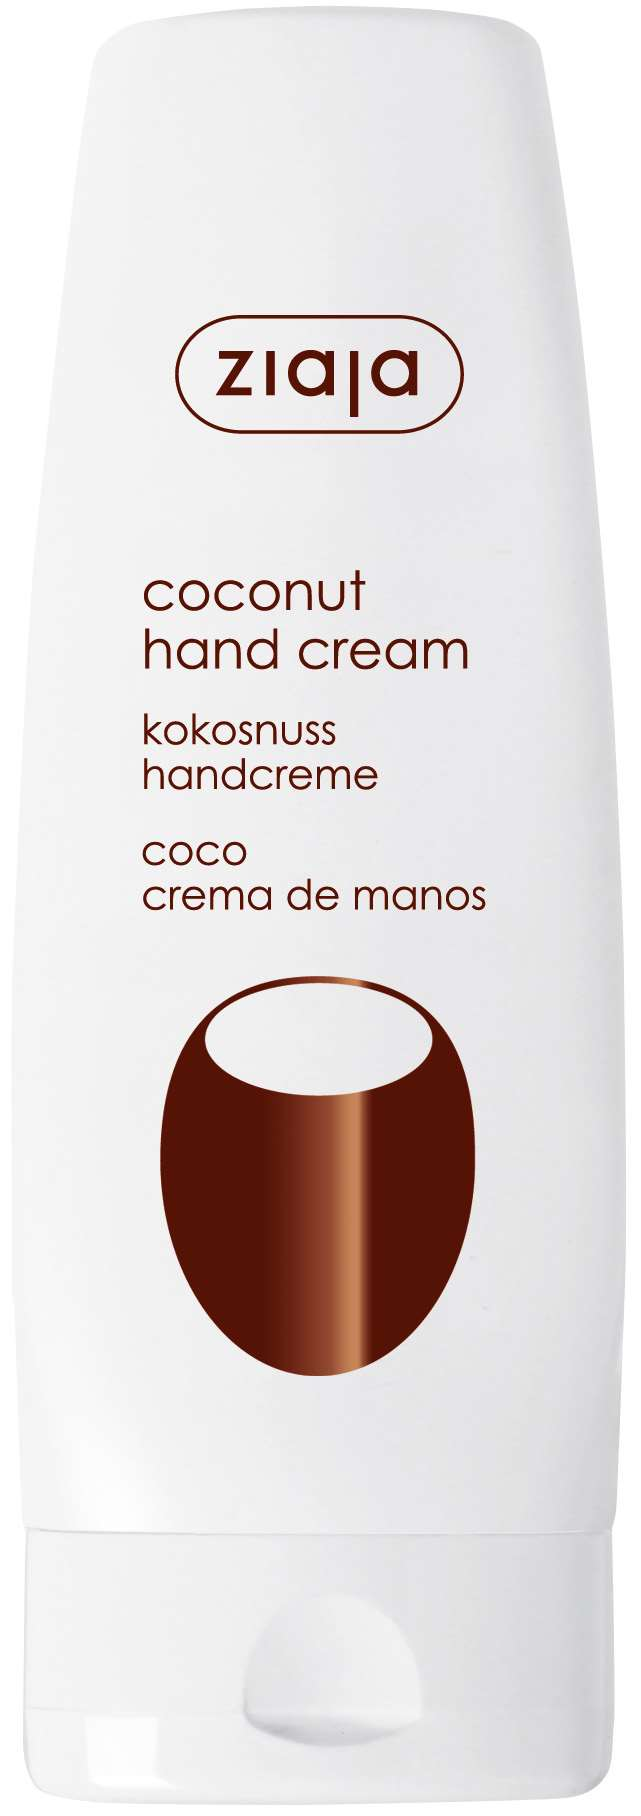 ziaja_coconut_hand_cream